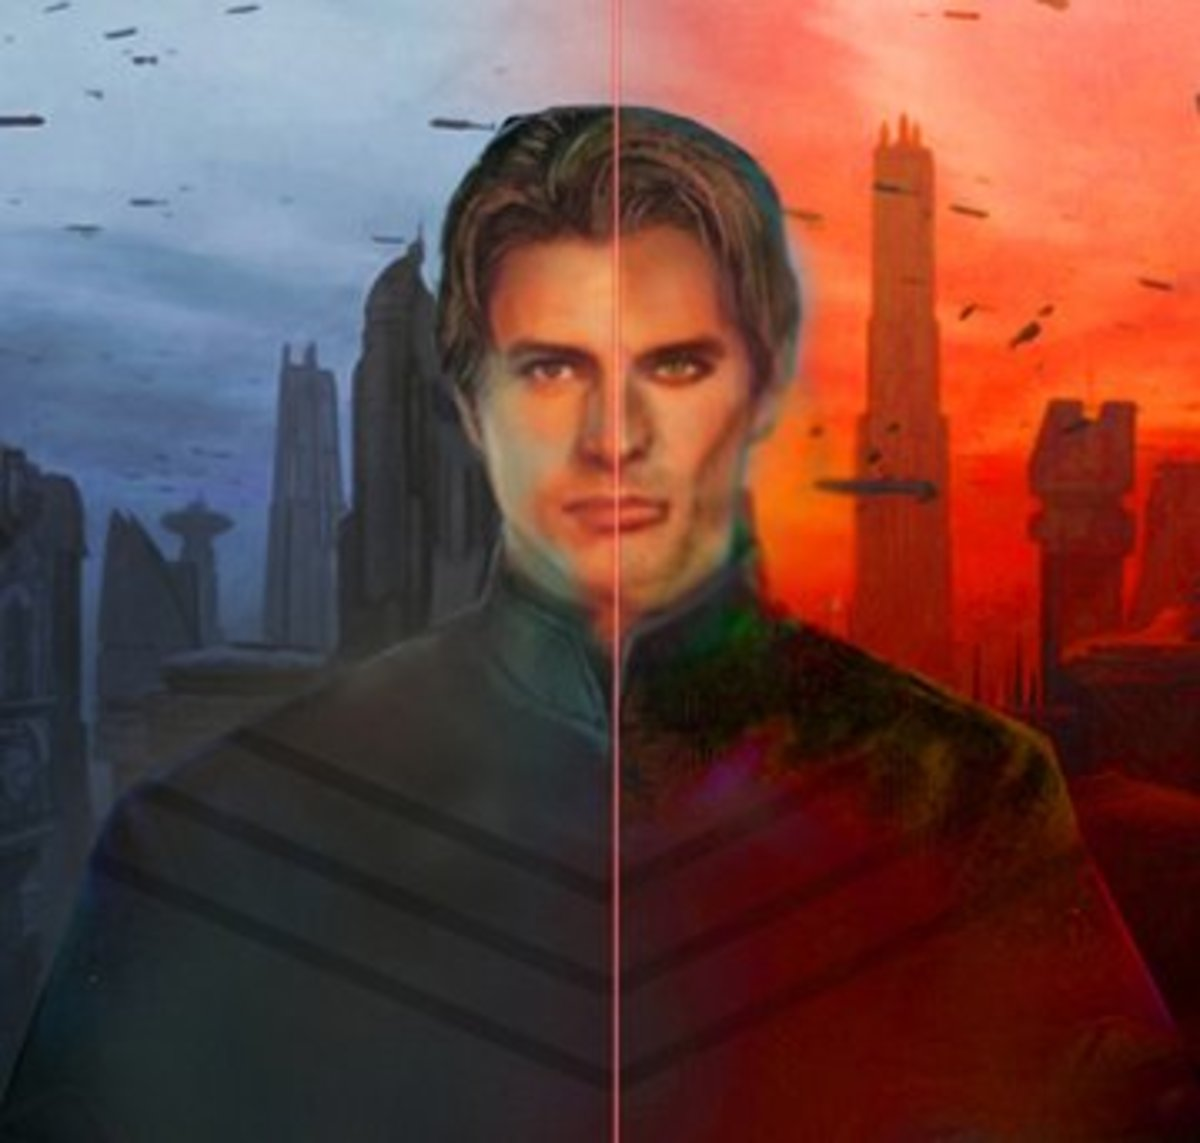 Jacen Solo (left) and Darth Caedus